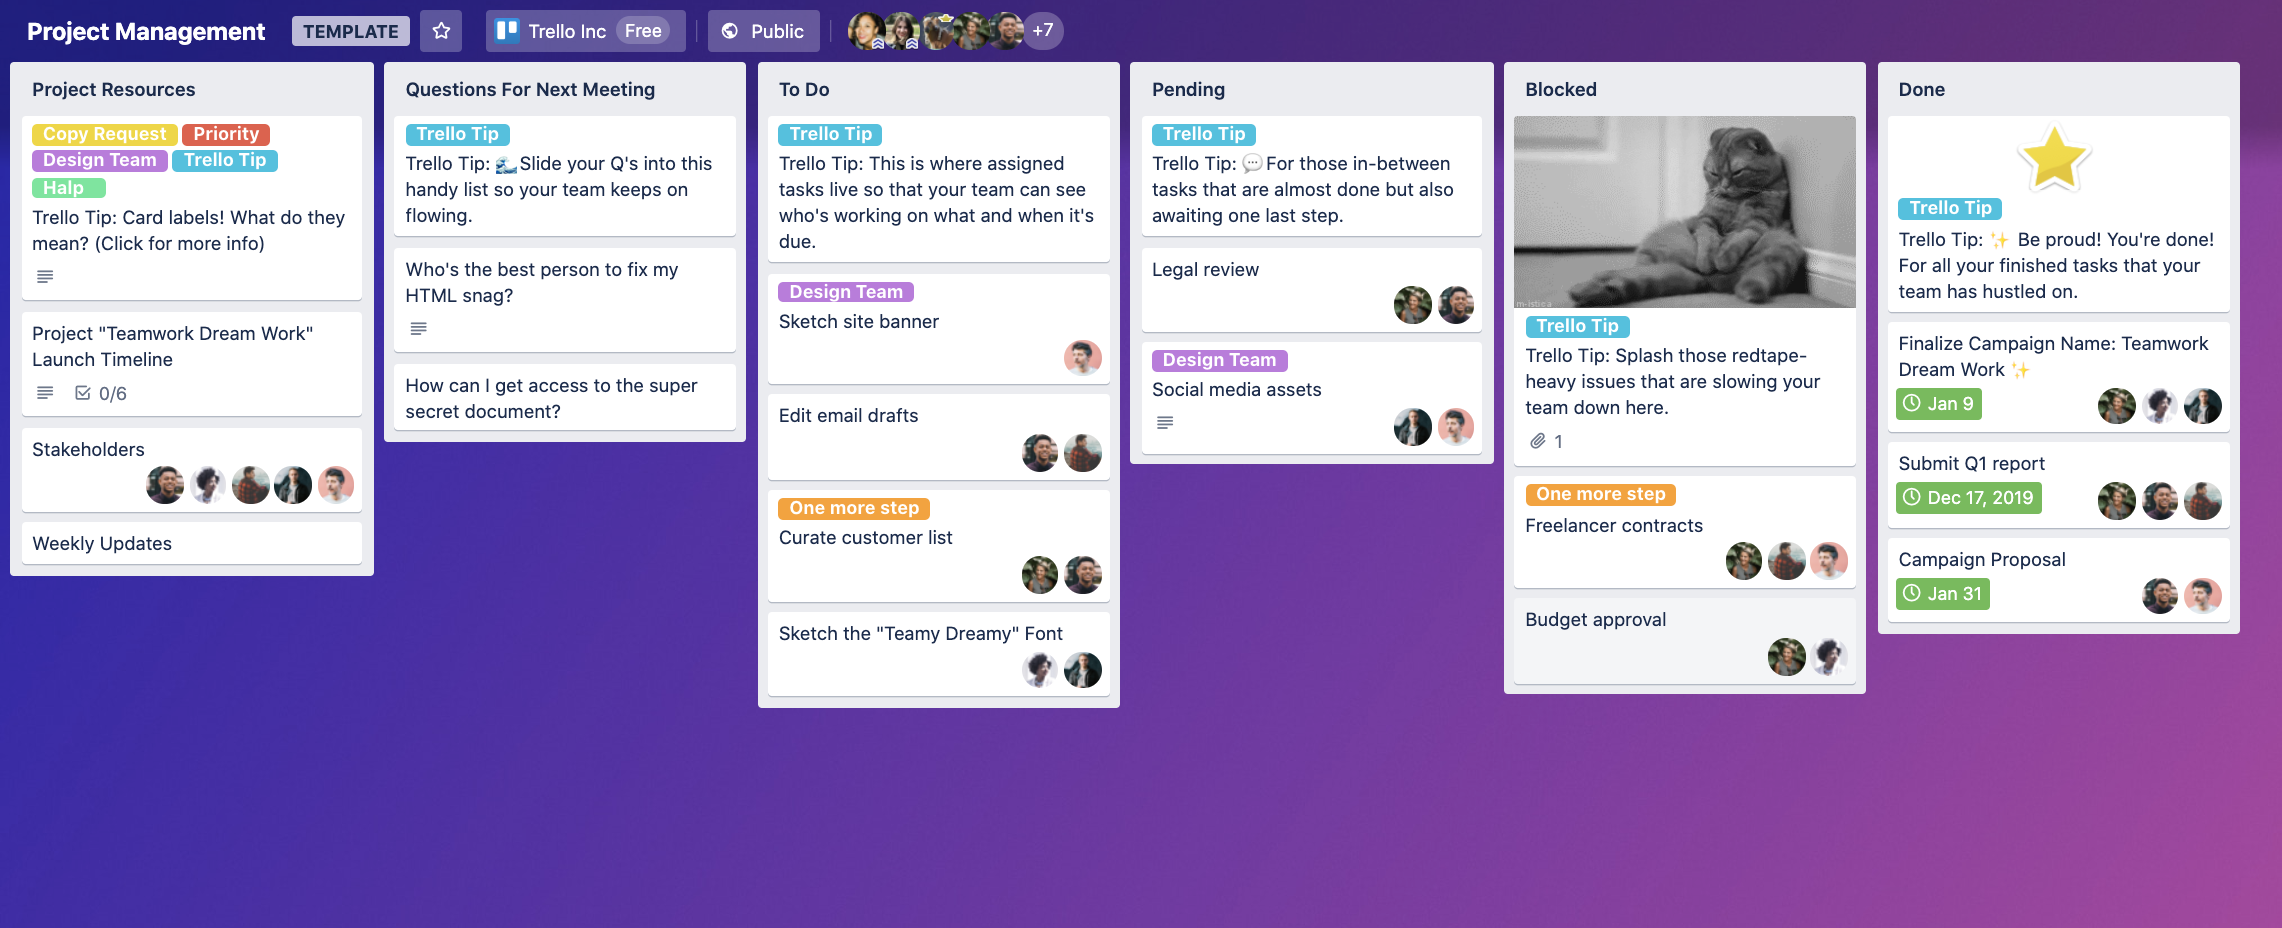 project management template trello board